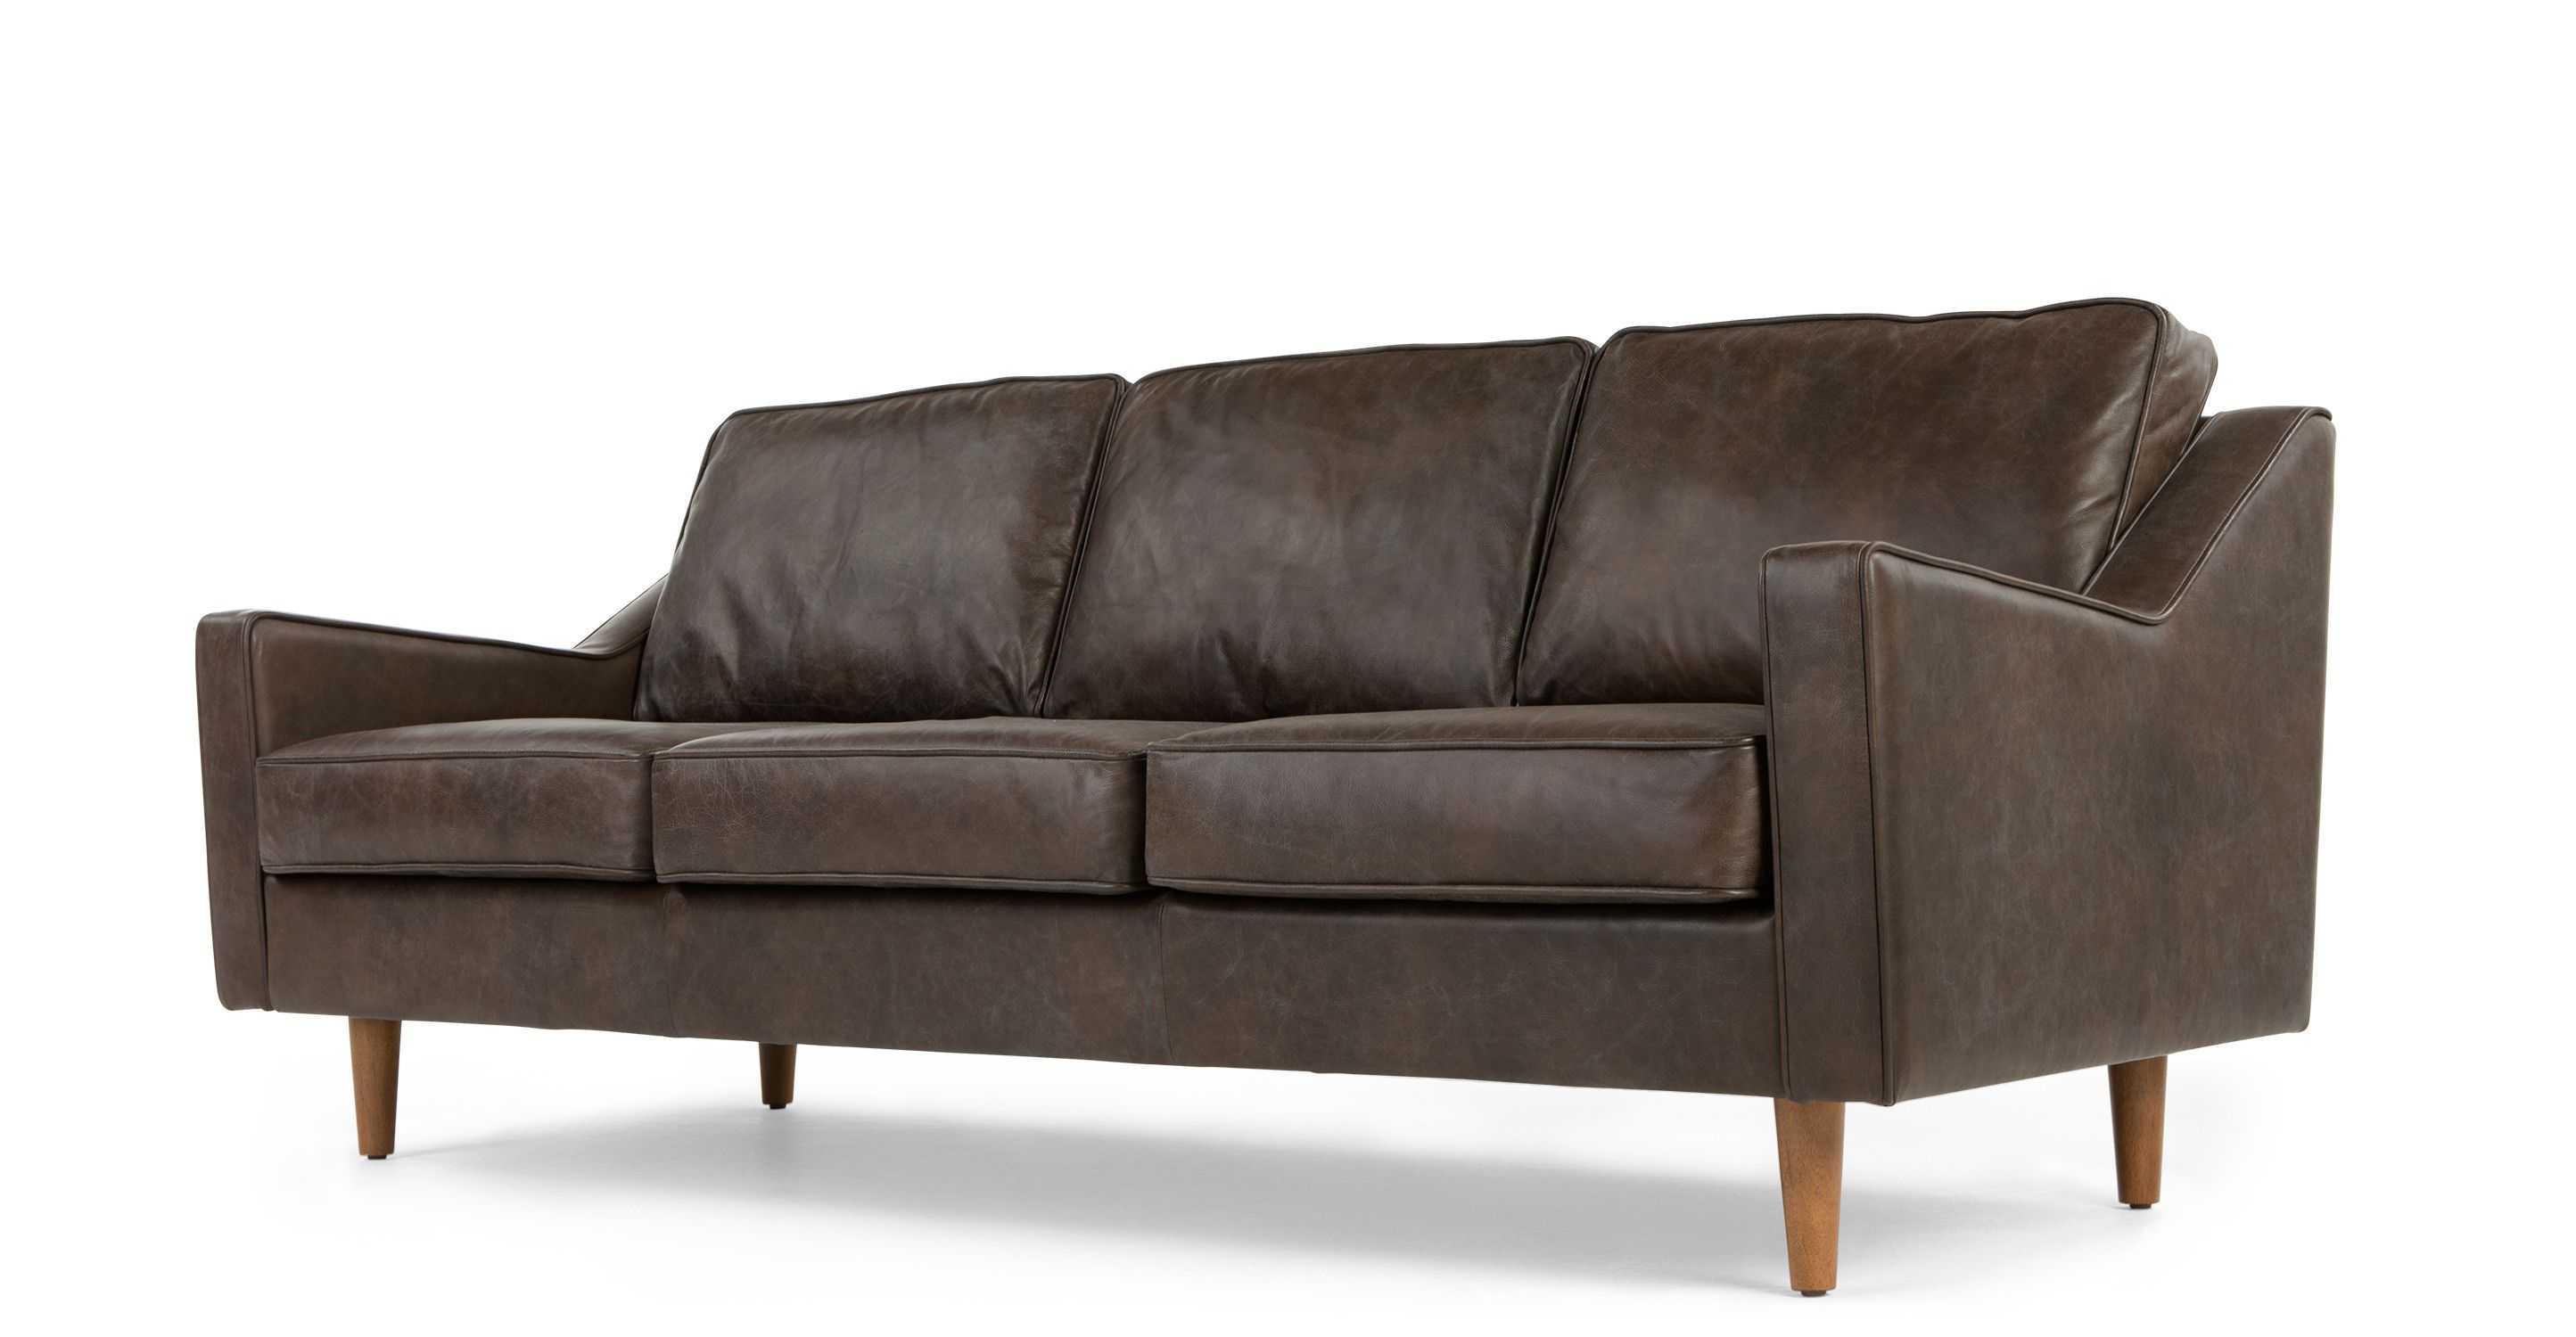 MADE Oxford Brown Premium Leather Sofa | House ideas | 3 ...